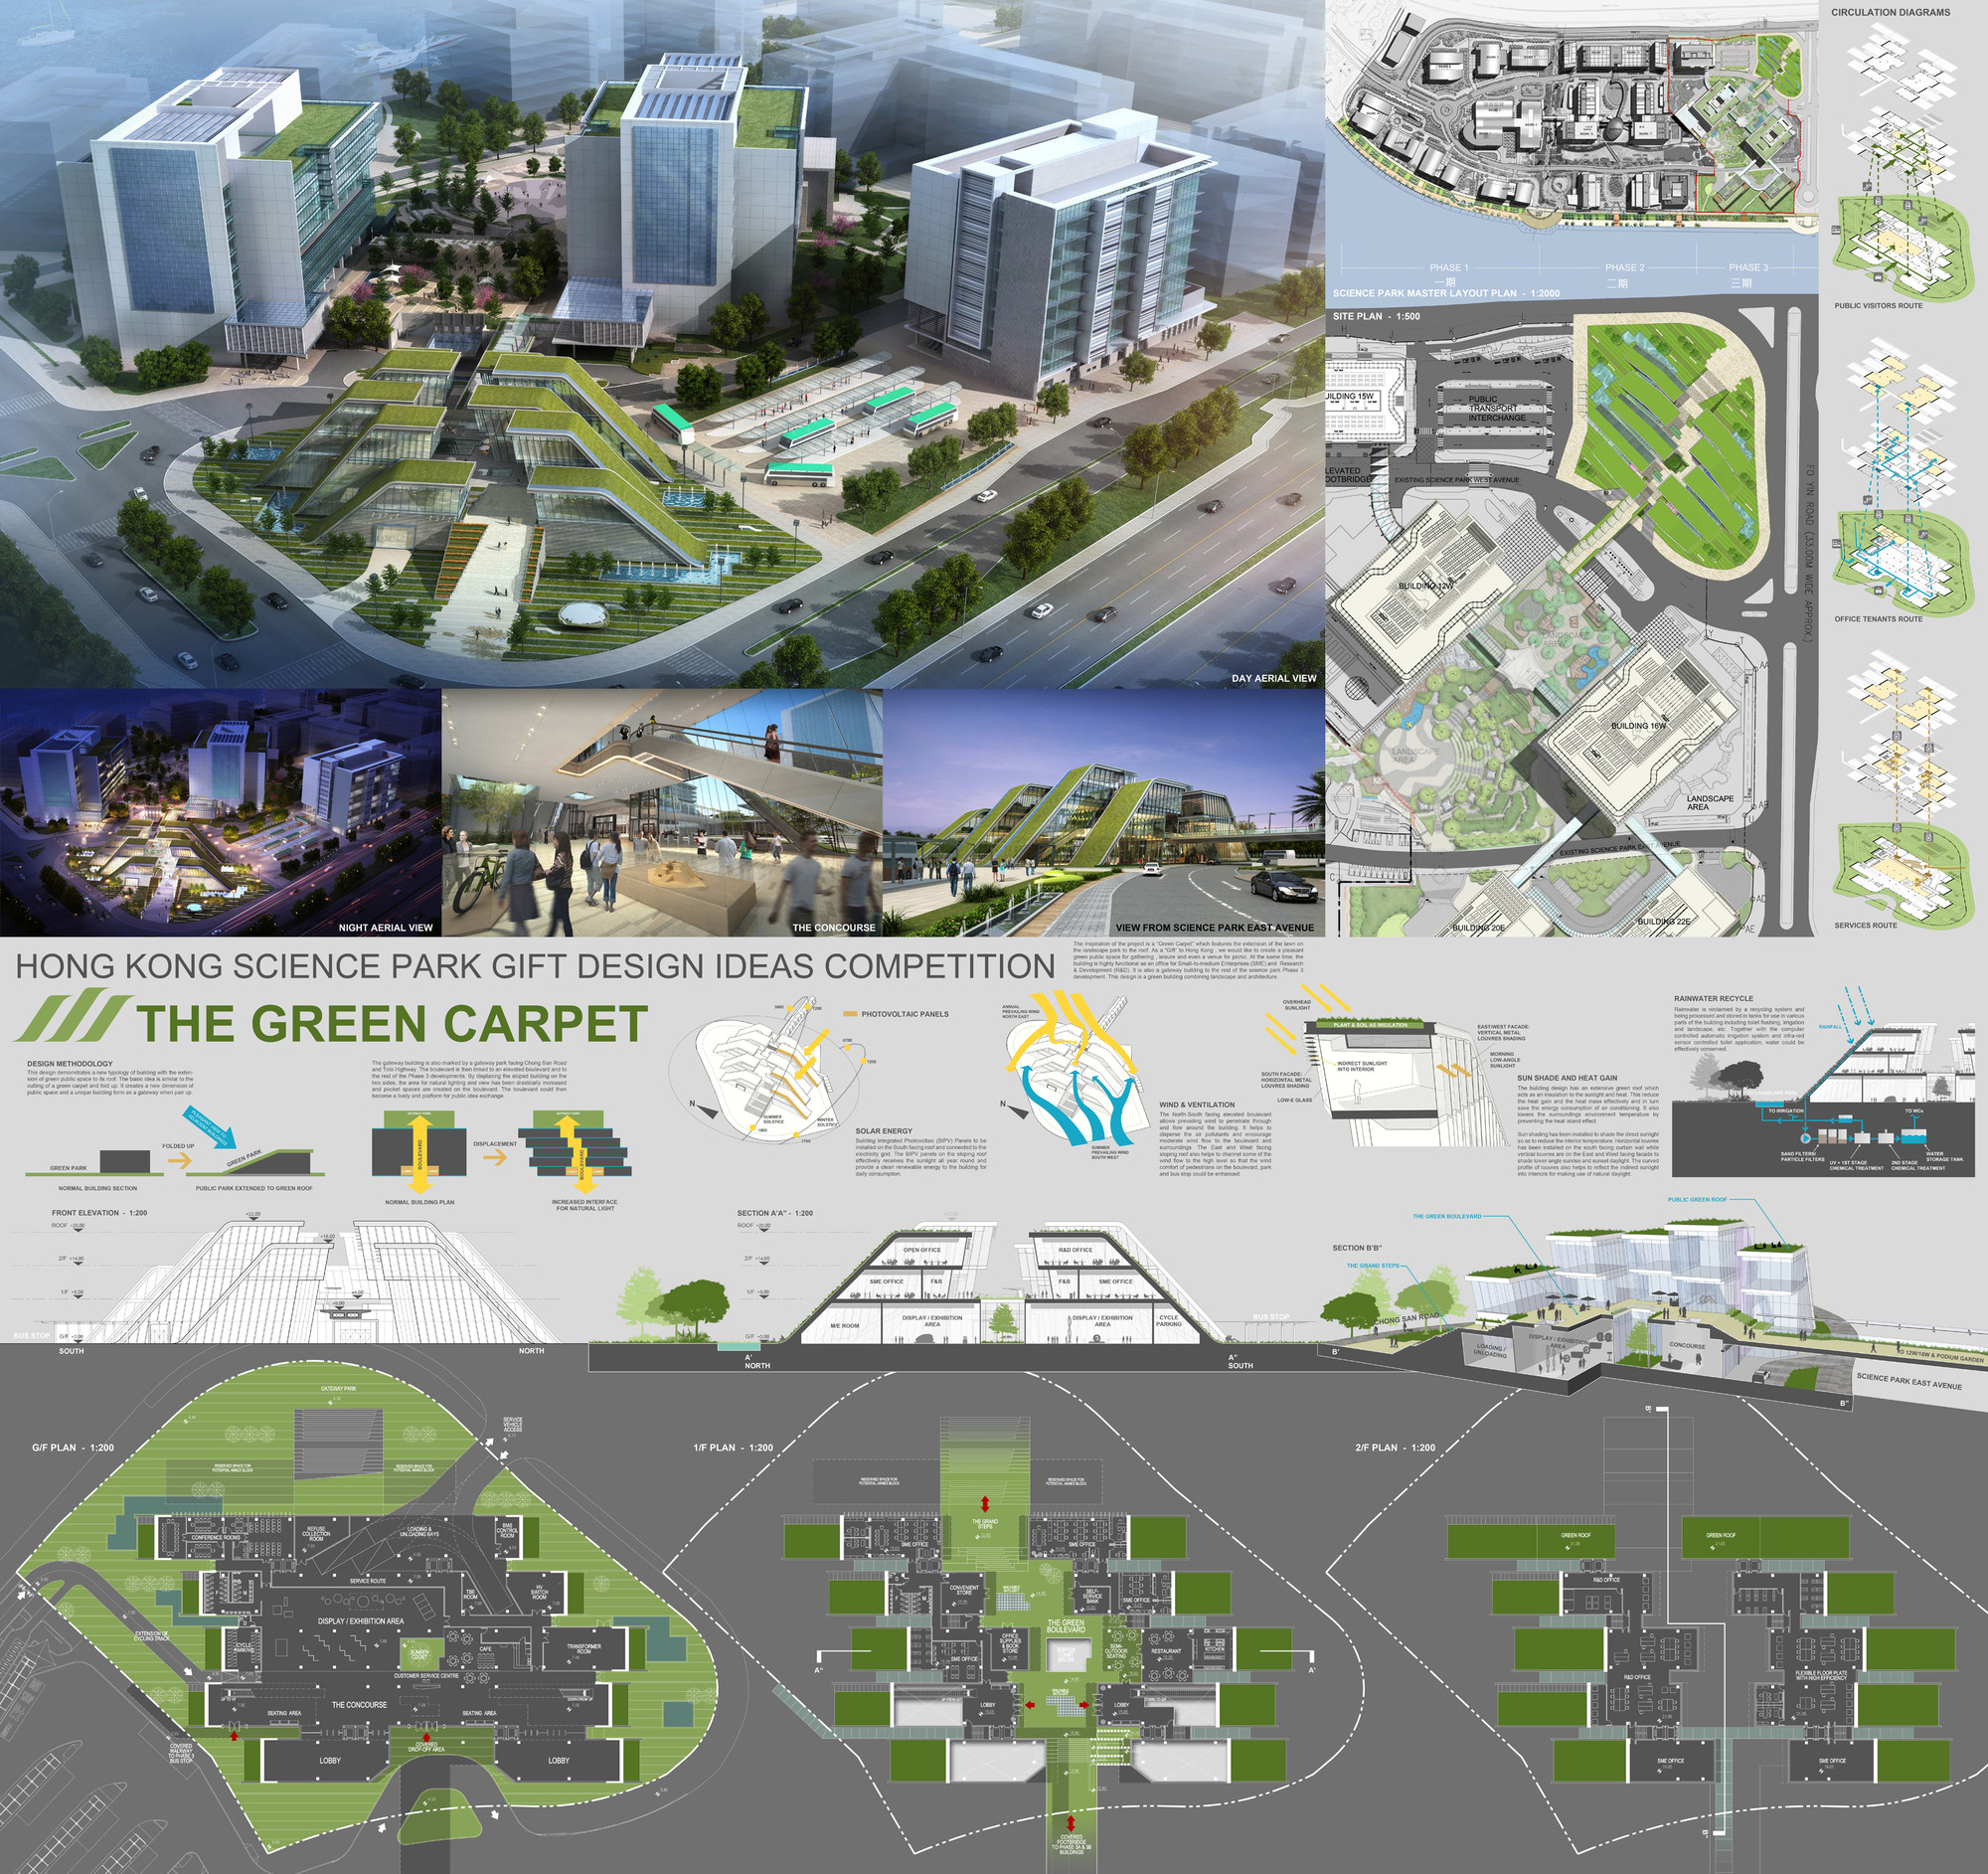 Winners Of Hong Kong 'GIFT' Ideas Competition Announced